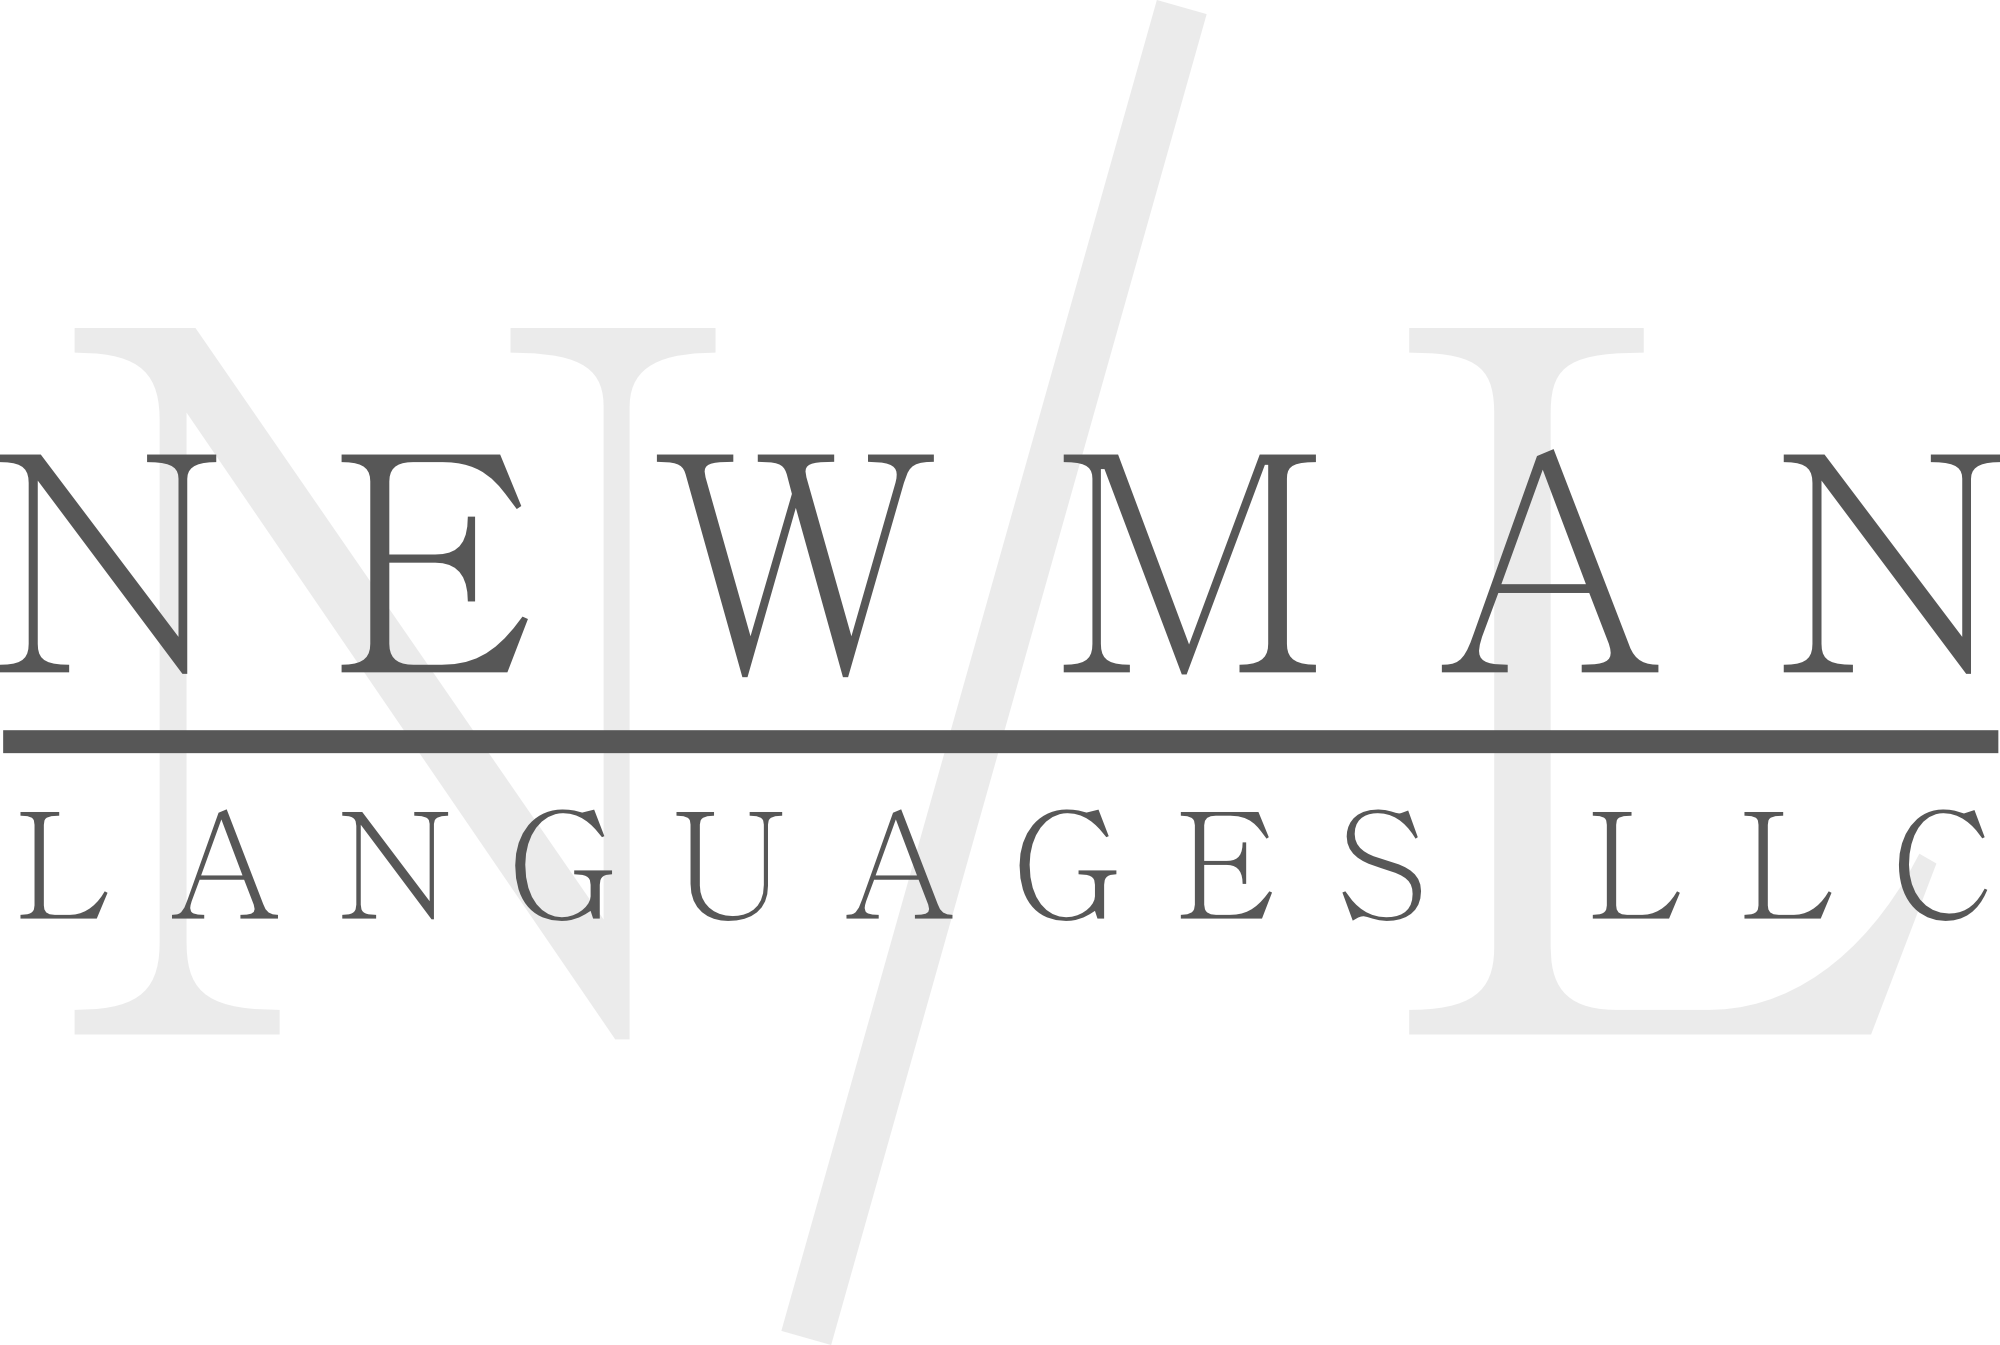 Newman Languages LLC image 1